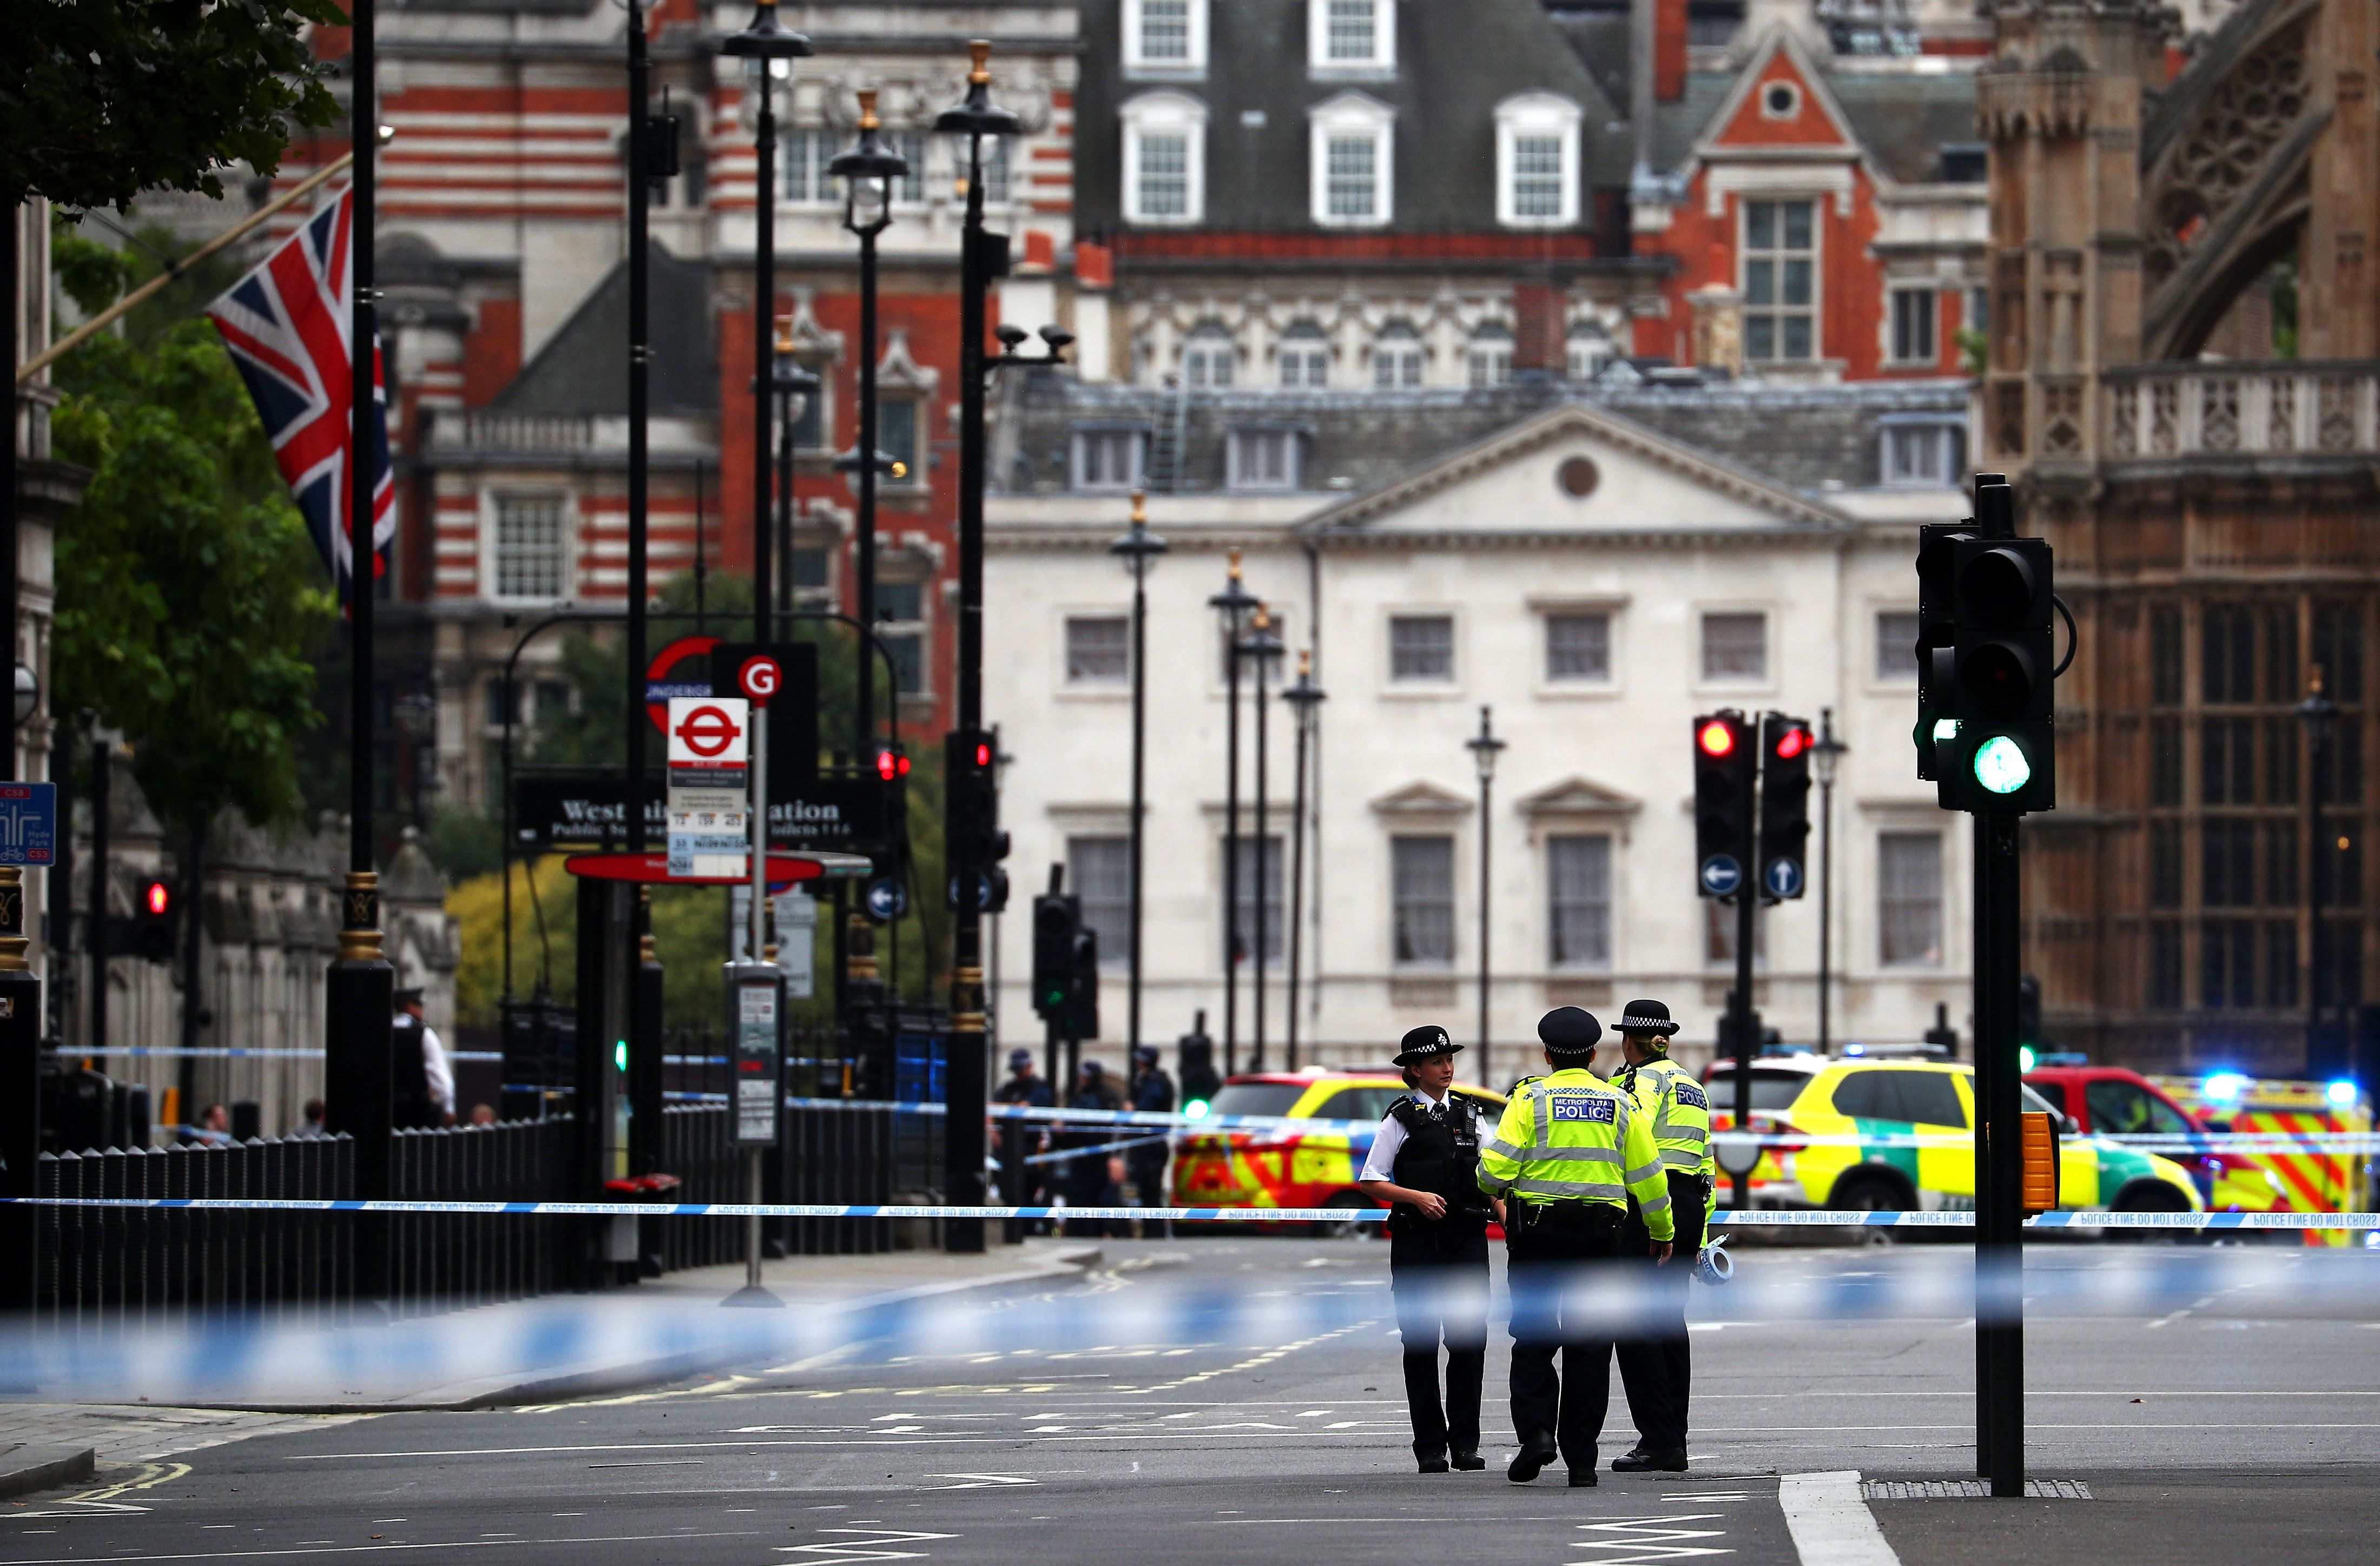 Police stand in the street after a car crashed outside the Houses of Parliament in Westminster, London, Britain, August 14, 2018. REUTERS/Hannah McKay